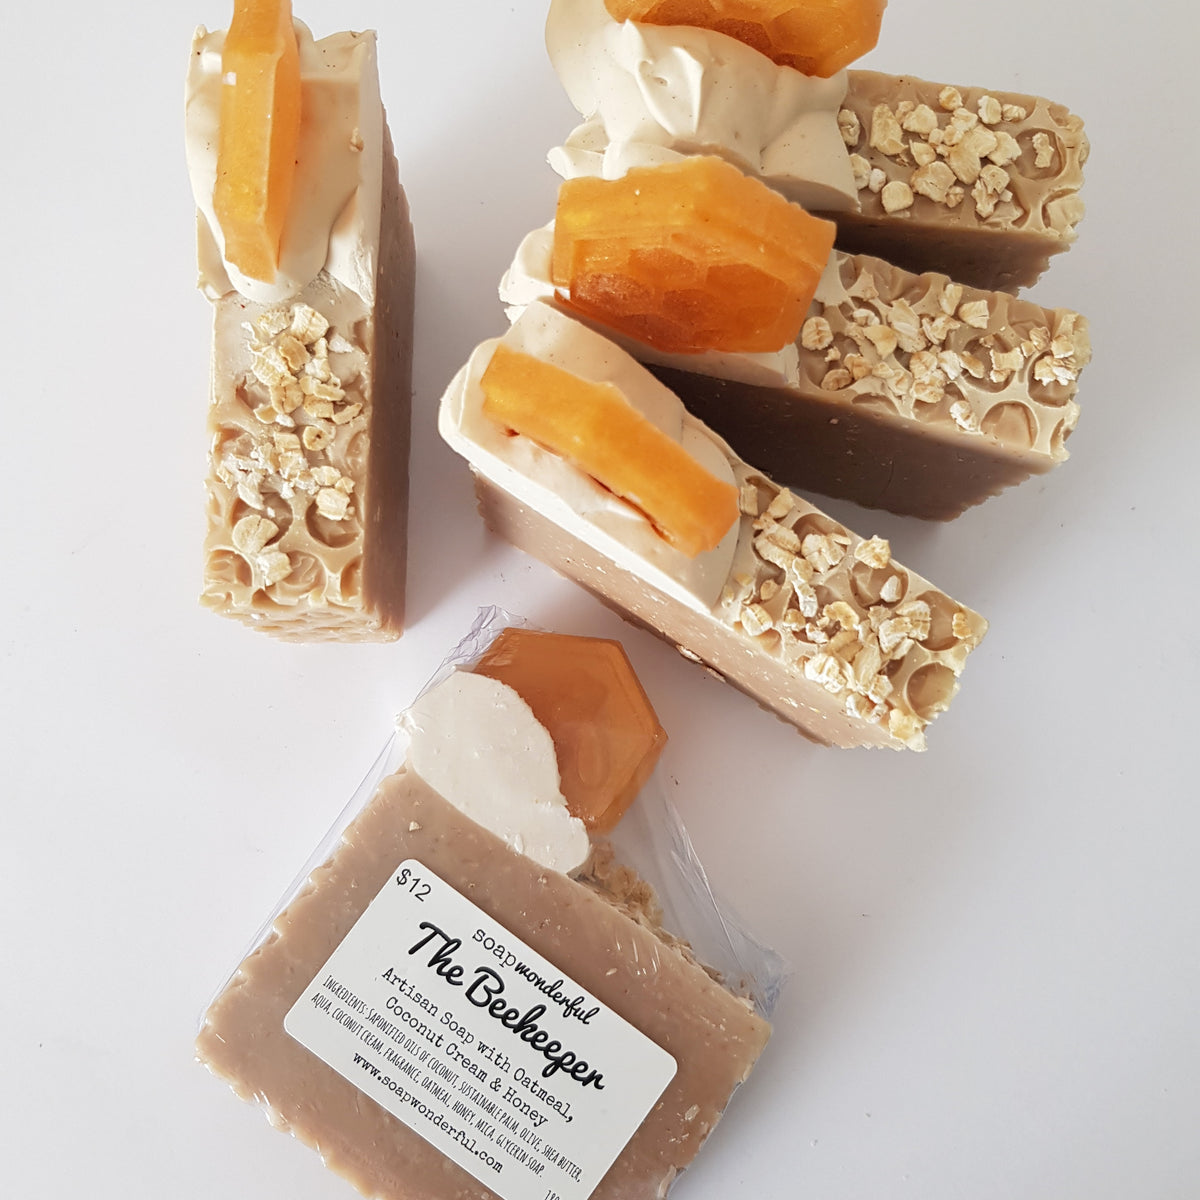 The Beekeeper Cold Process Soap